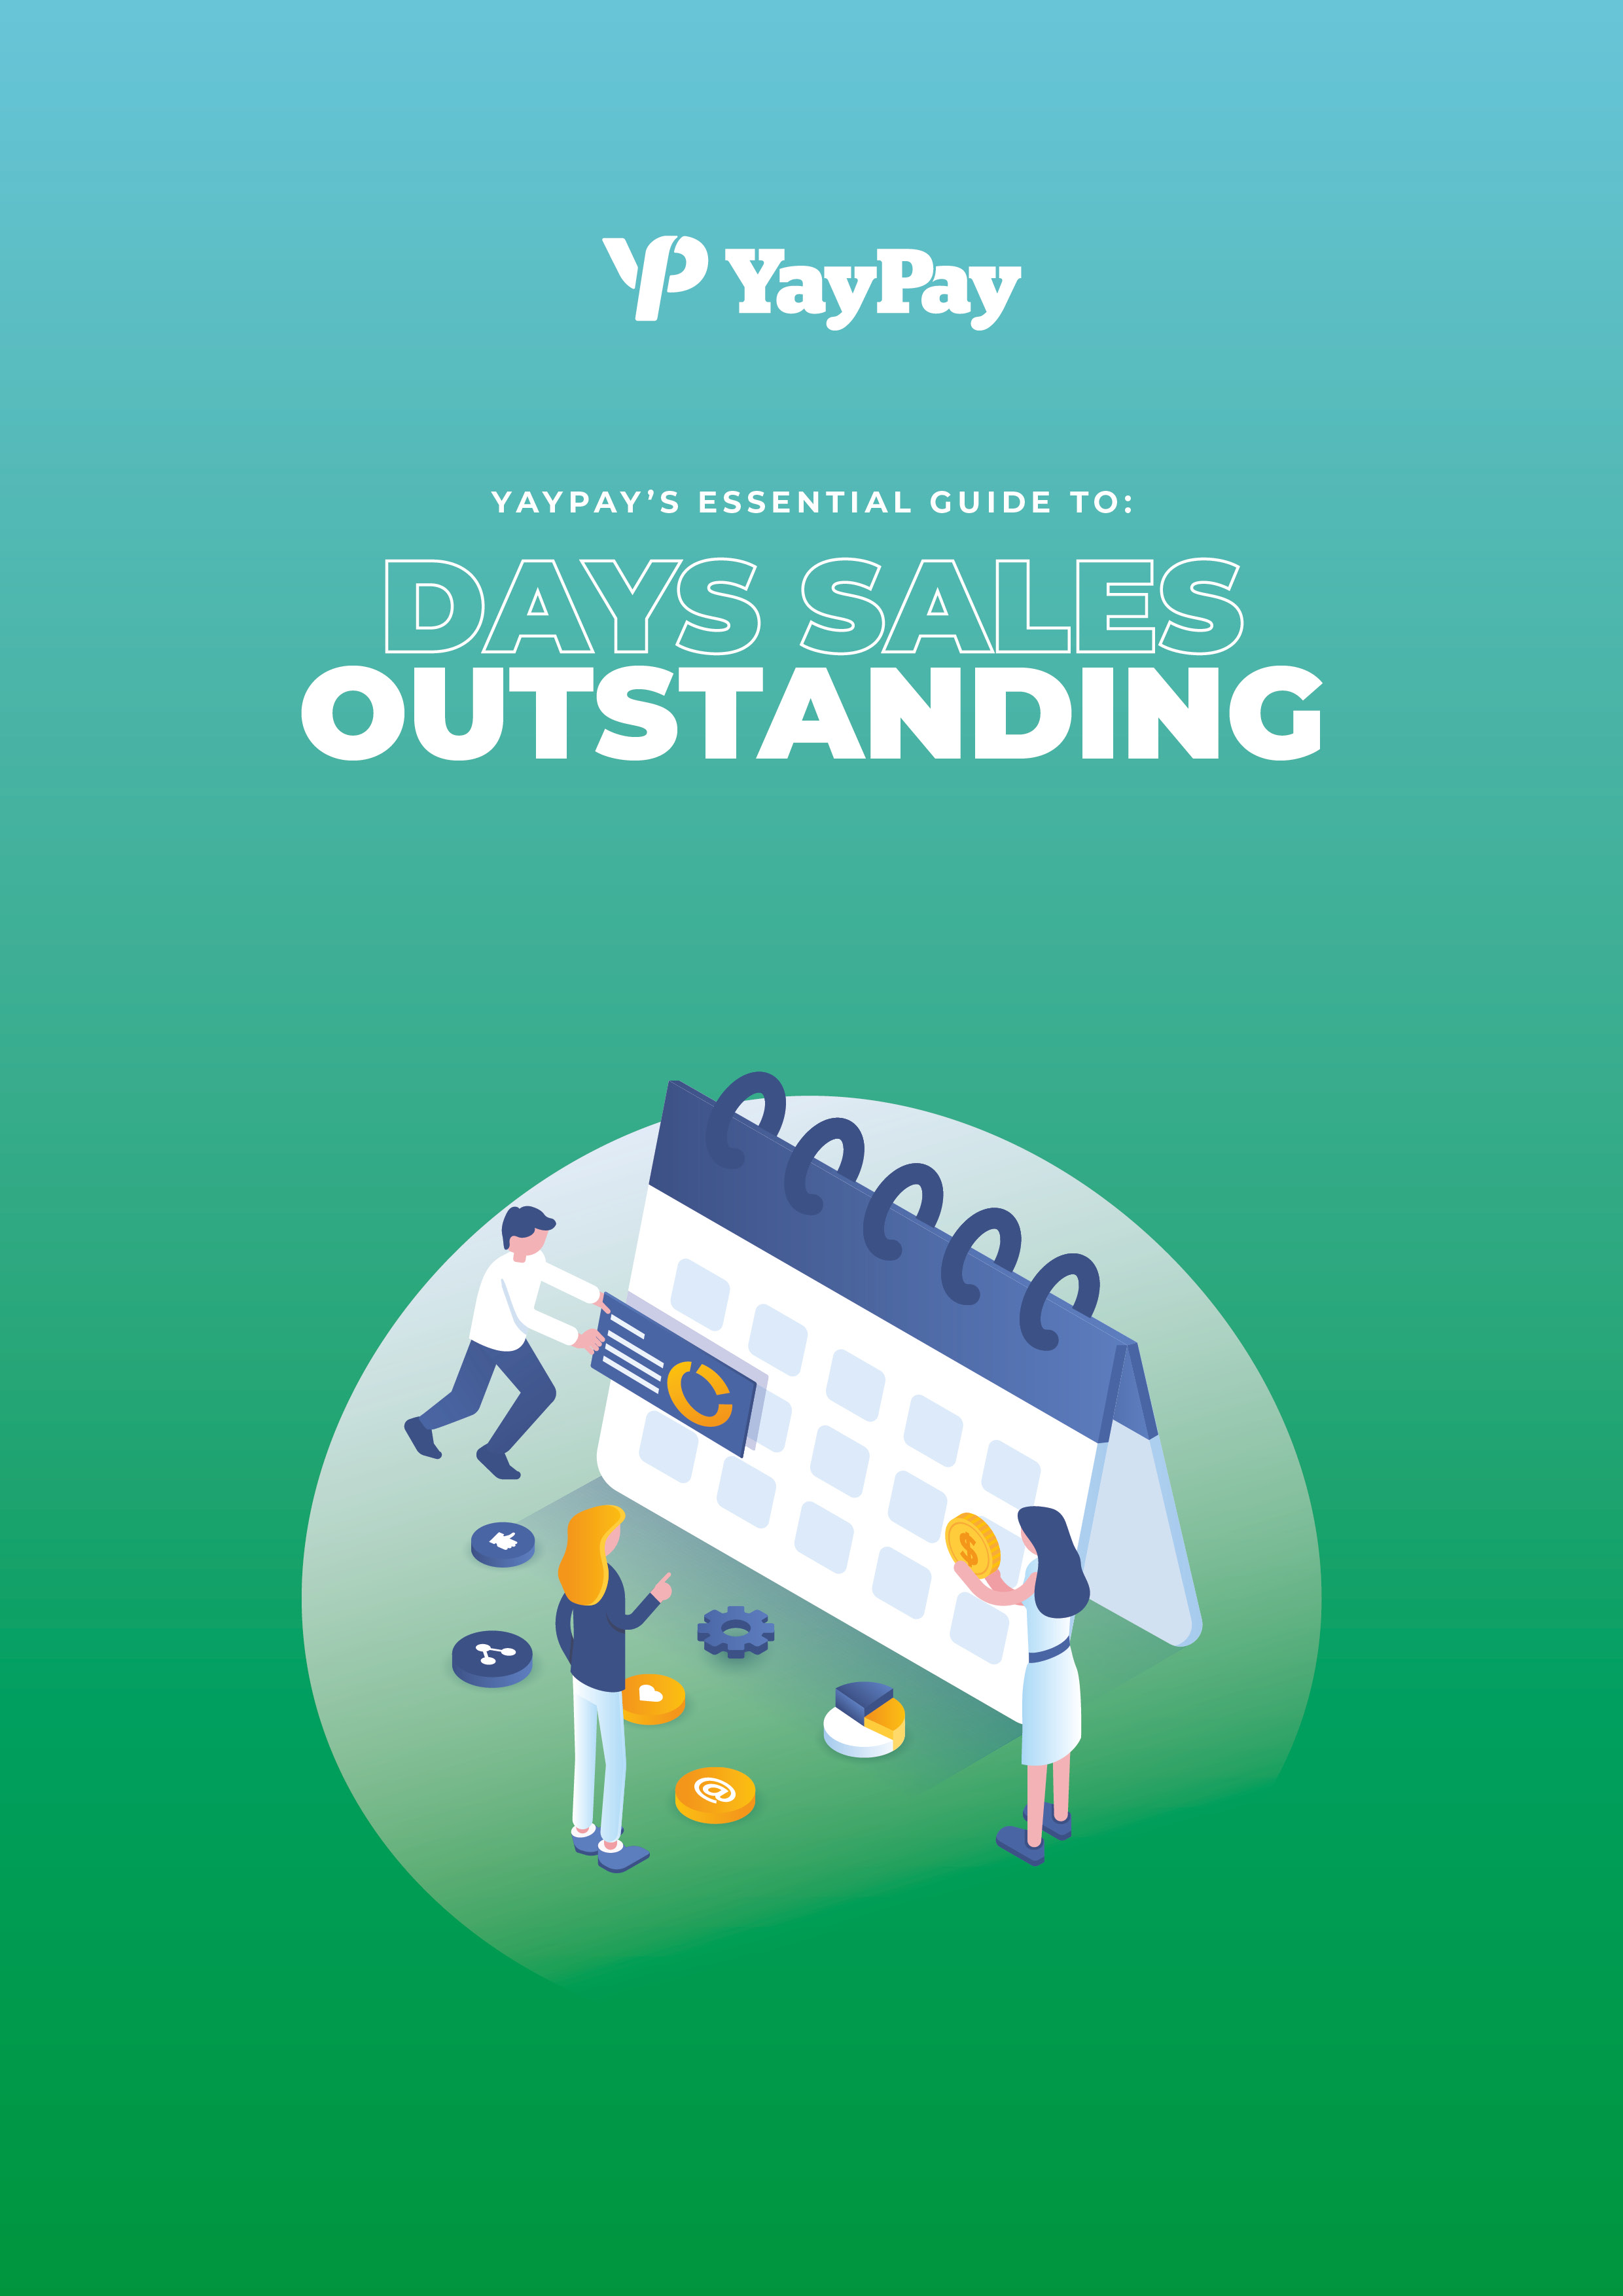 Guide: YayPay's Essential Guide to Days Sales Outstanding